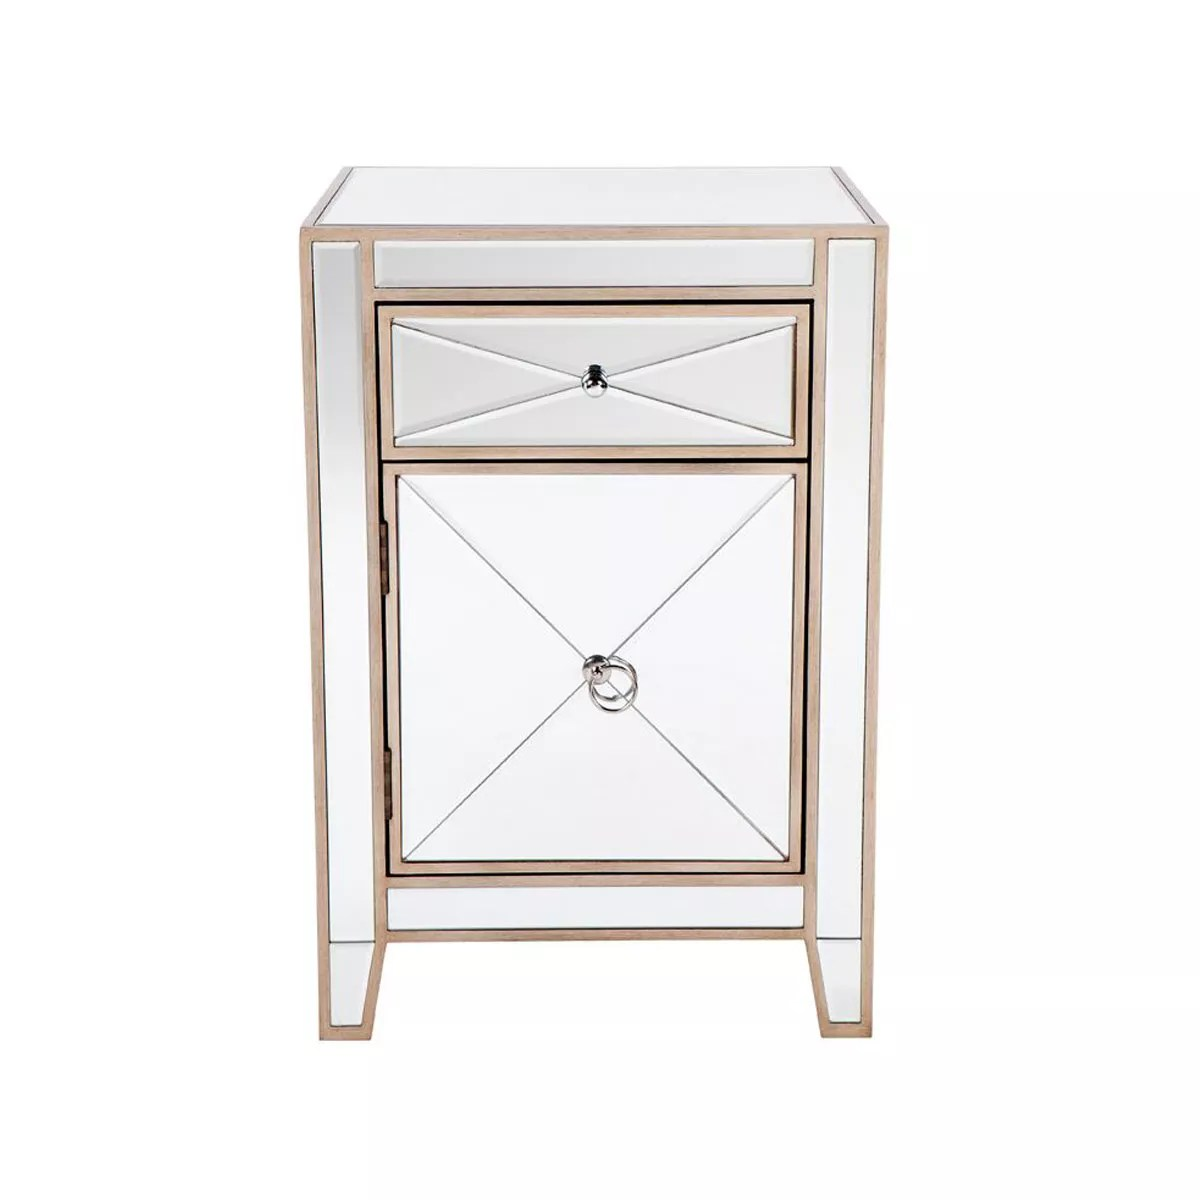 apolo antique gold mirrored bedside table 48cm x 40cm